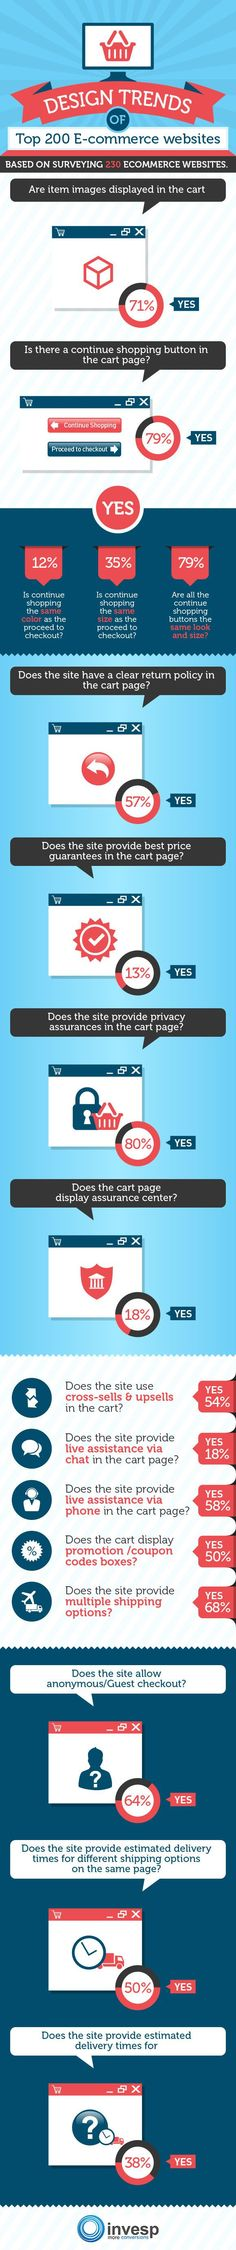 Ecommerce Design Trends What to Include On Your Online Shop #Infographic